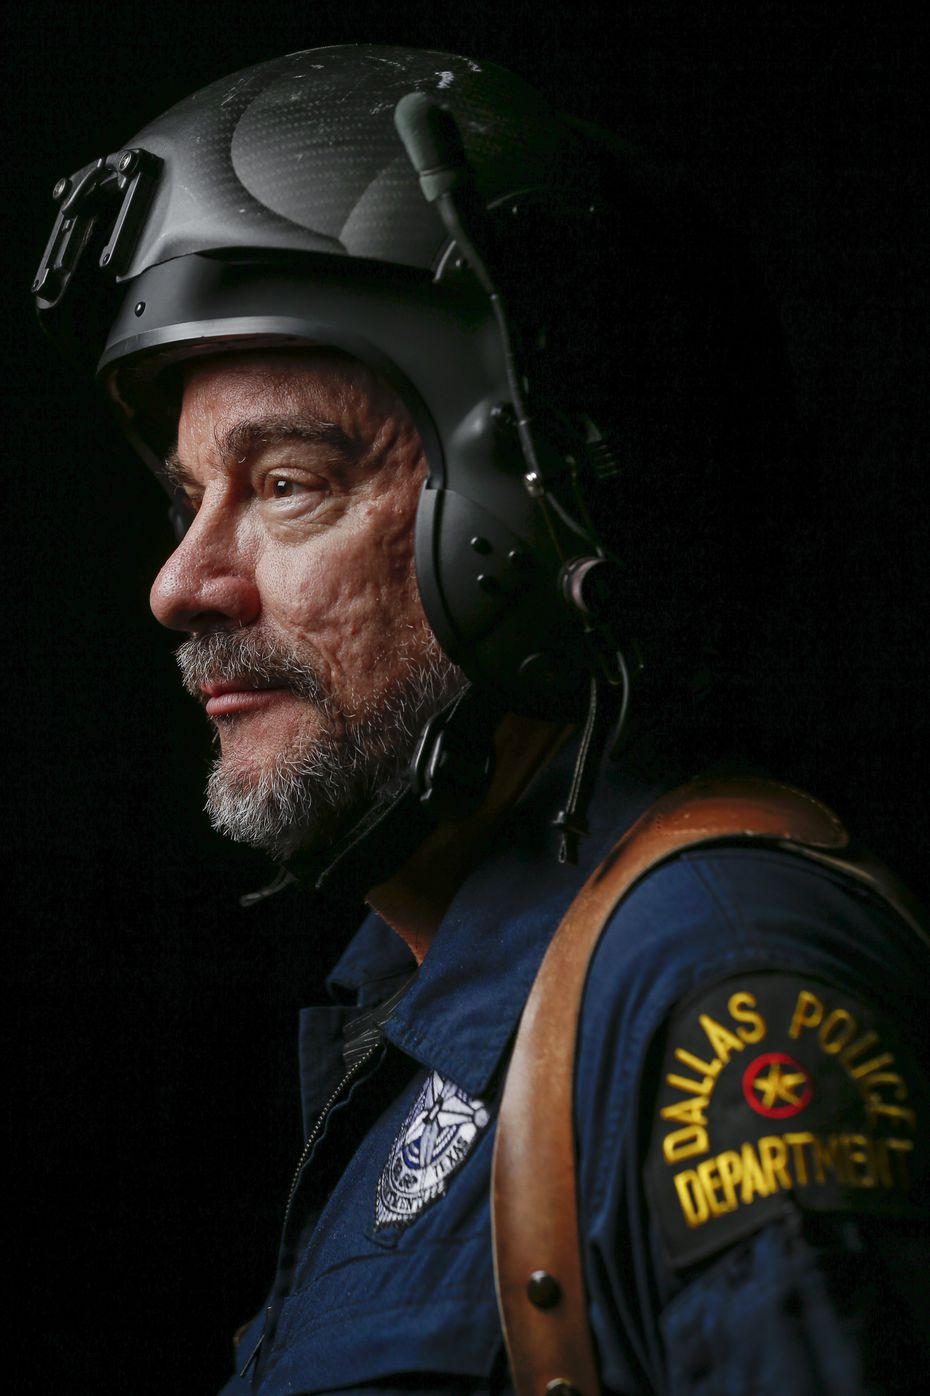 Senior Cpl. Mark Colborn, a former Army pilot, is the helicopter unit's unofficial photographer and its longest-serving member.